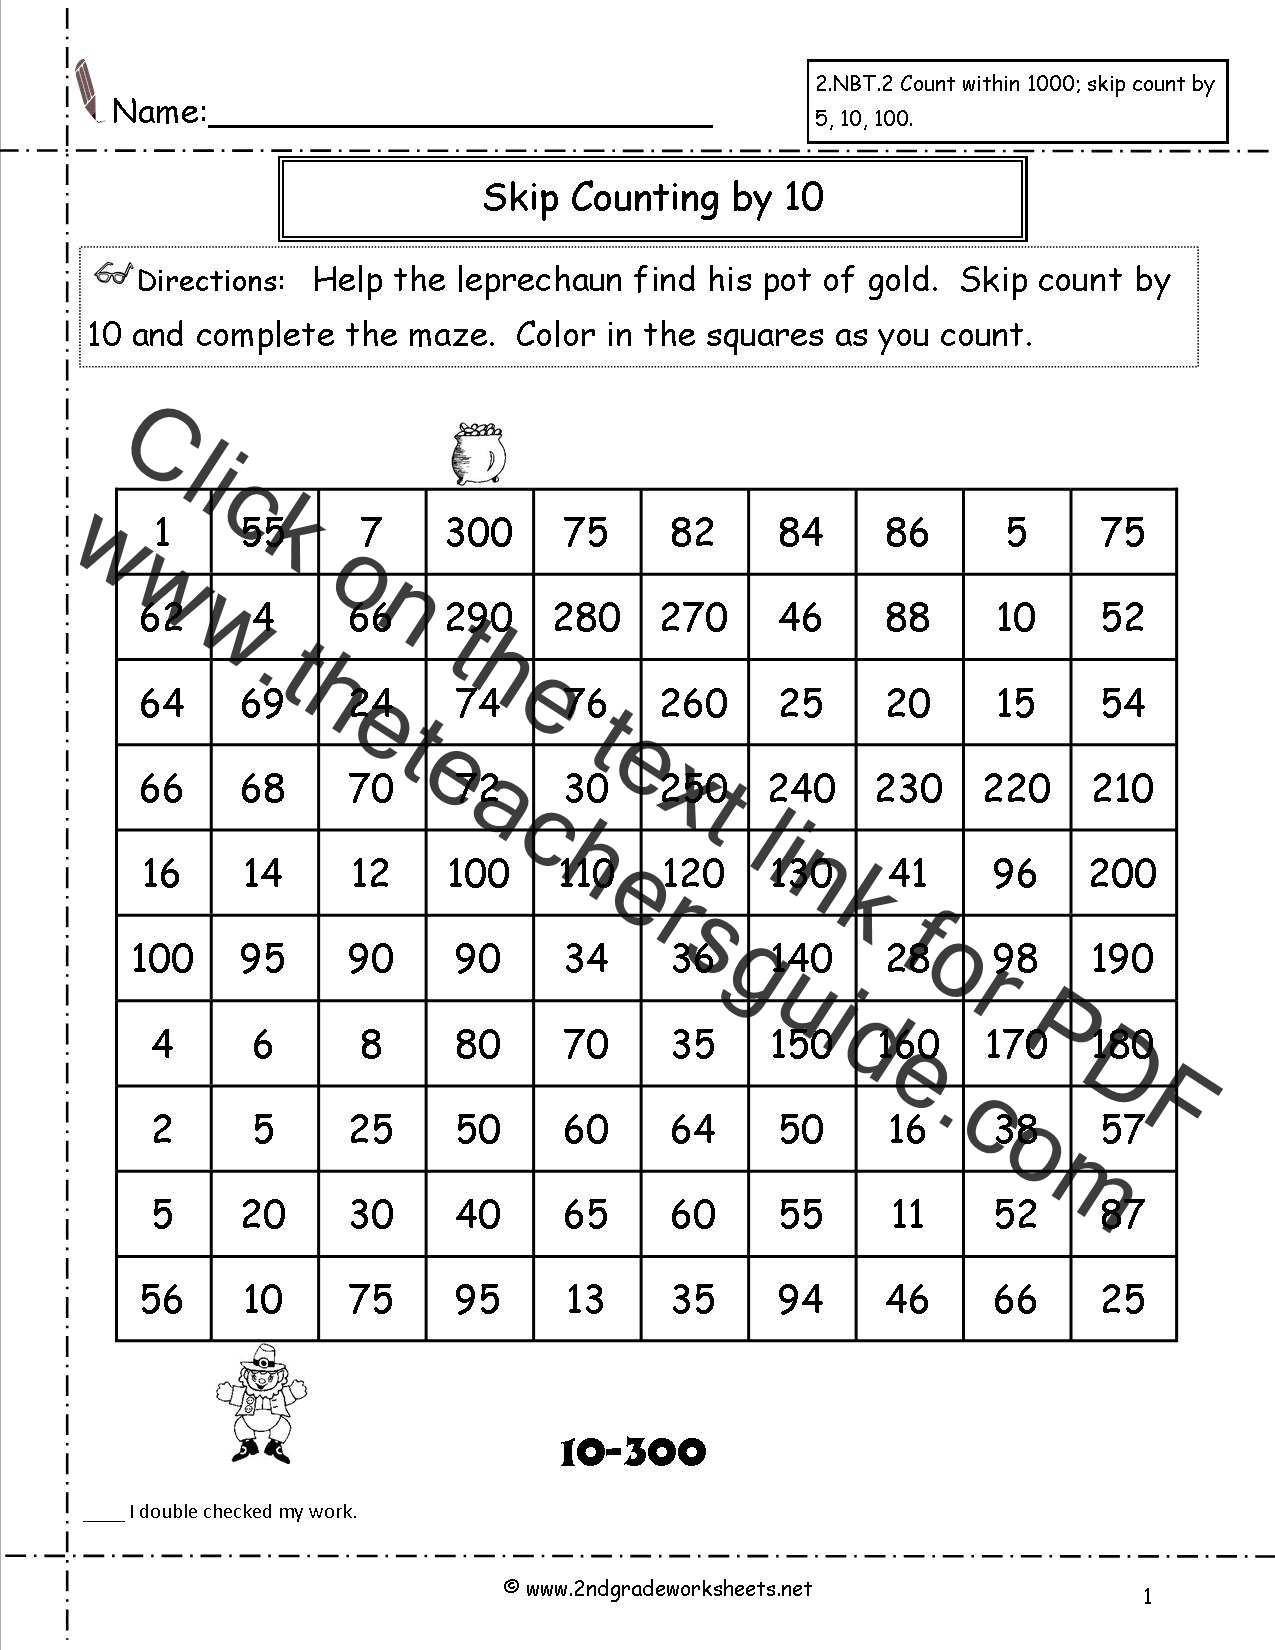 Worksheets Skip Counting Worksheets free skip counting worksheets count by 10 maze